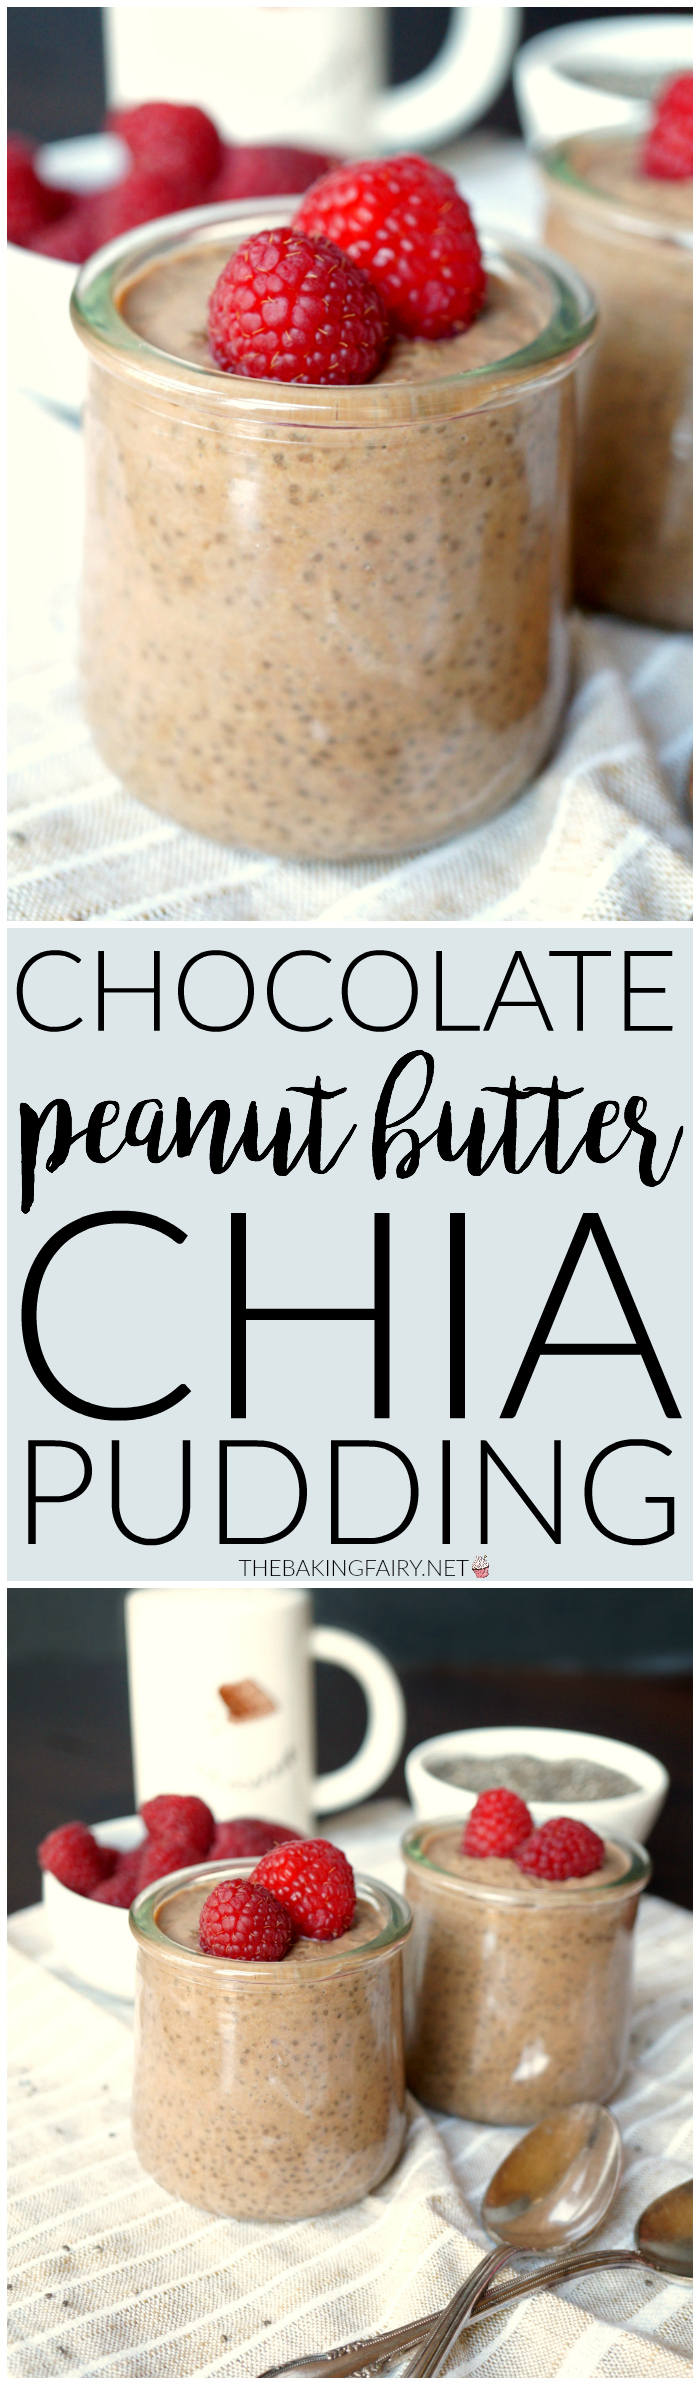 chocolate peanut butter chia pudding | The Baking Fairy